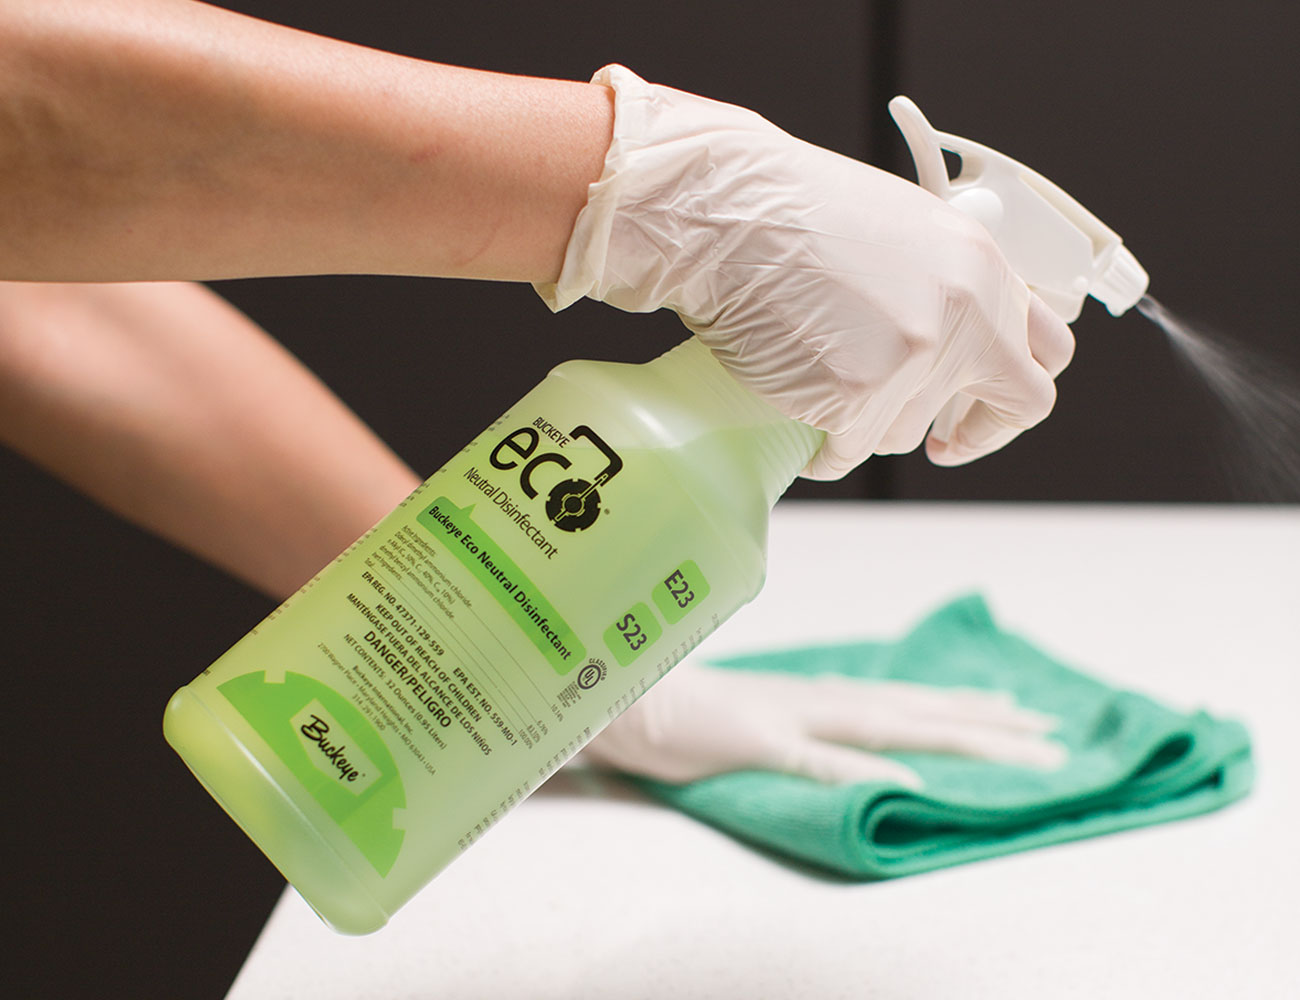 E23 Eco Disinfectant